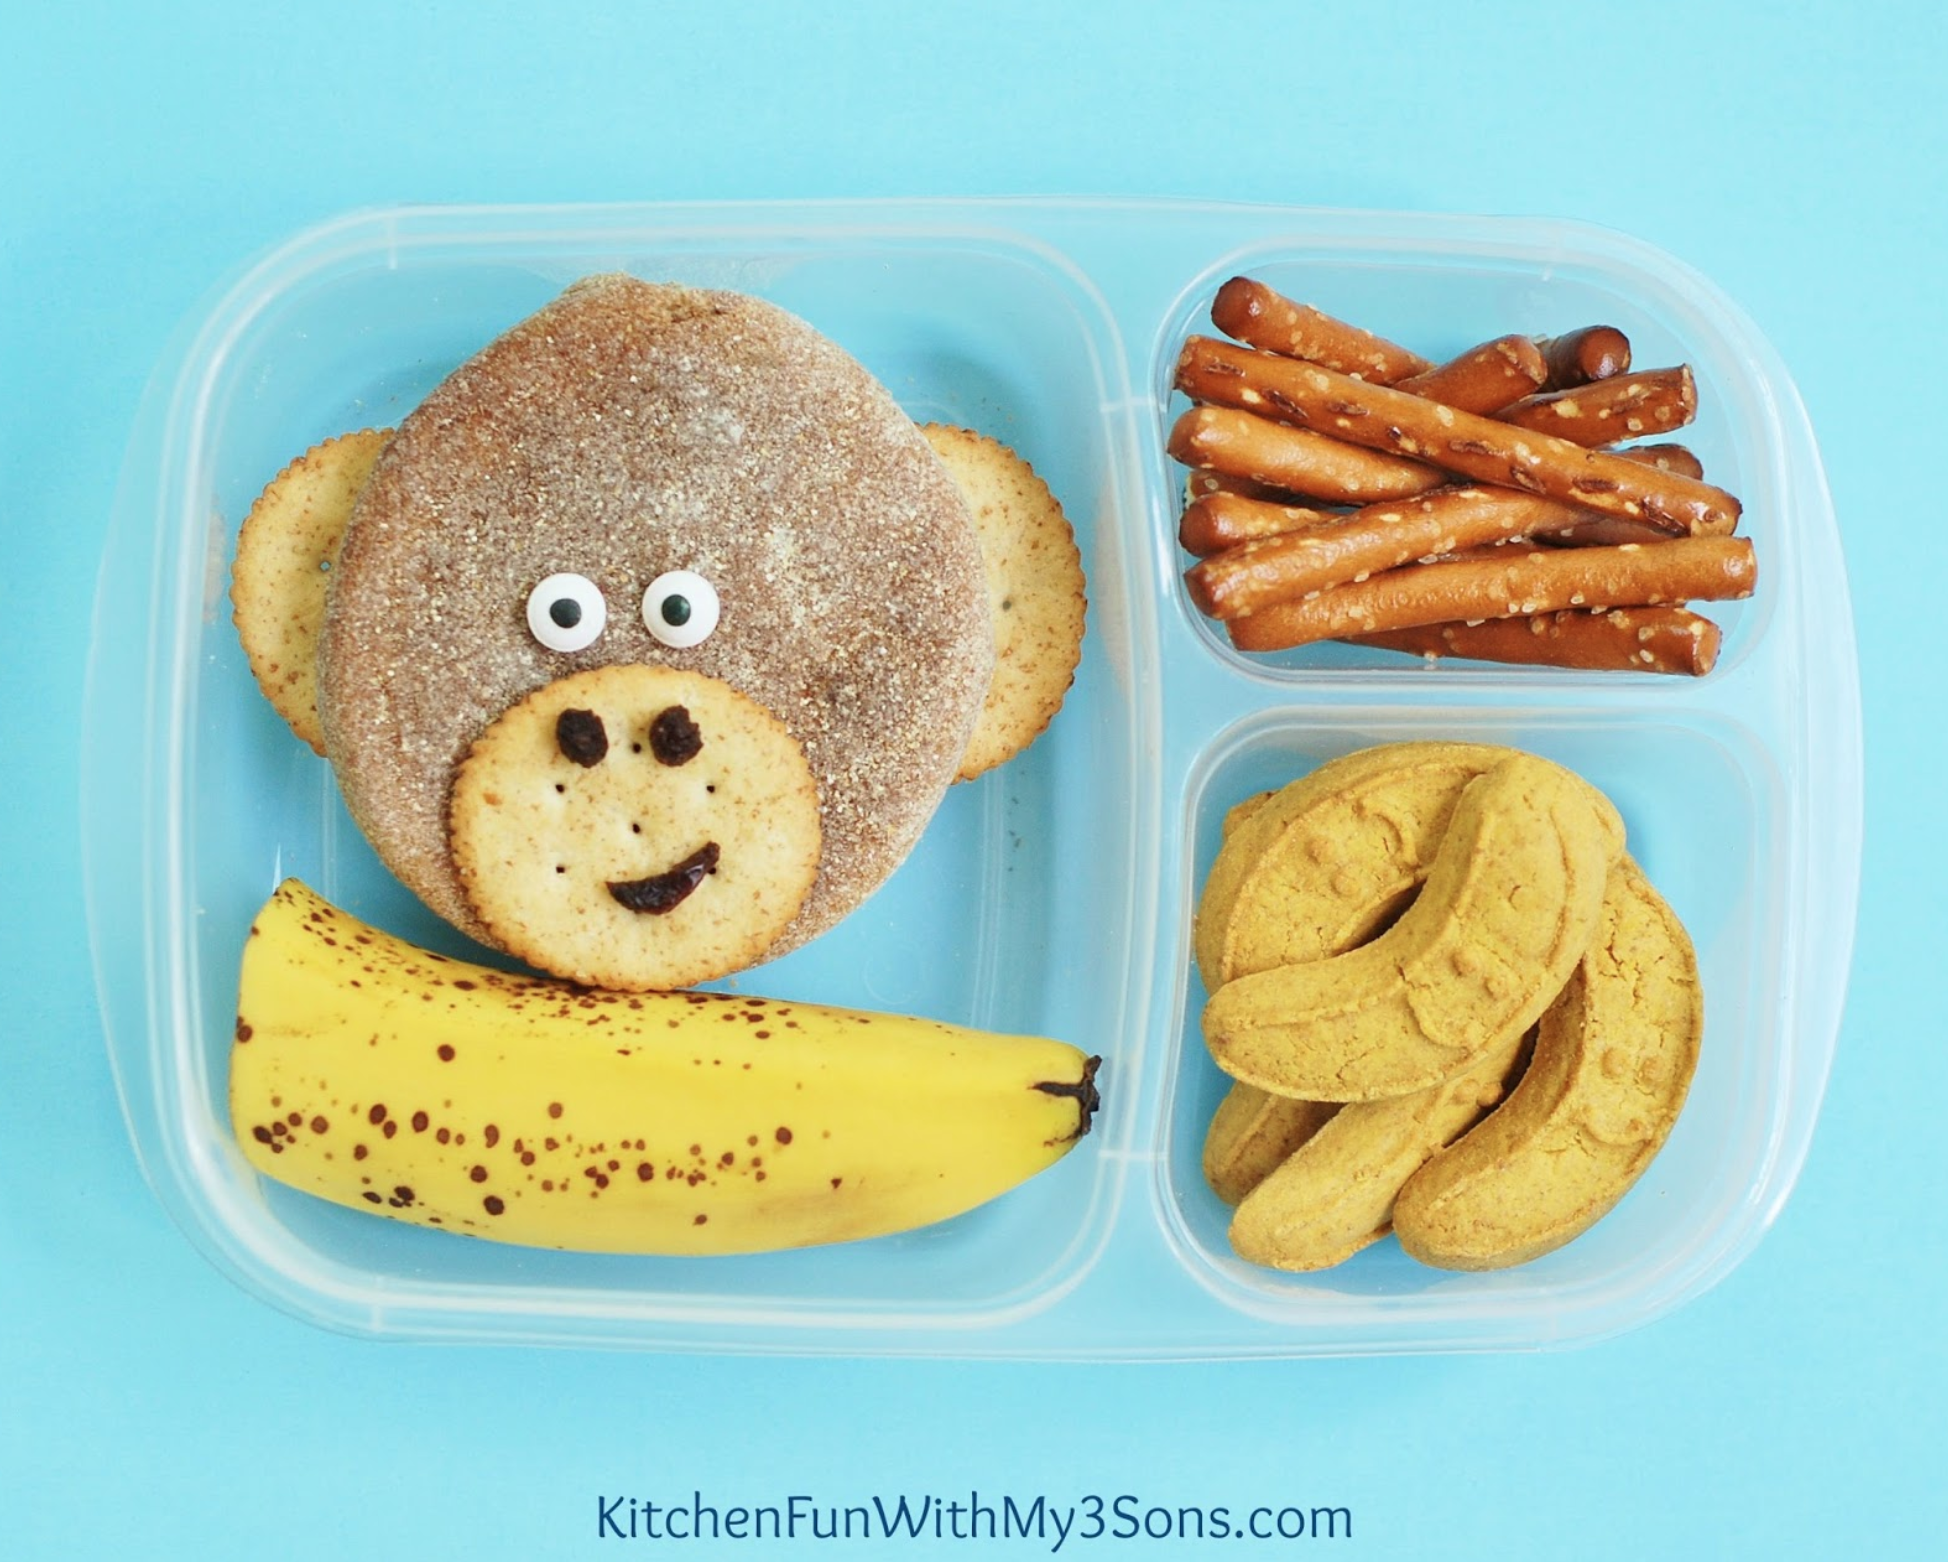 Monkey Lunch Kitchen Fun with My 3 Sons